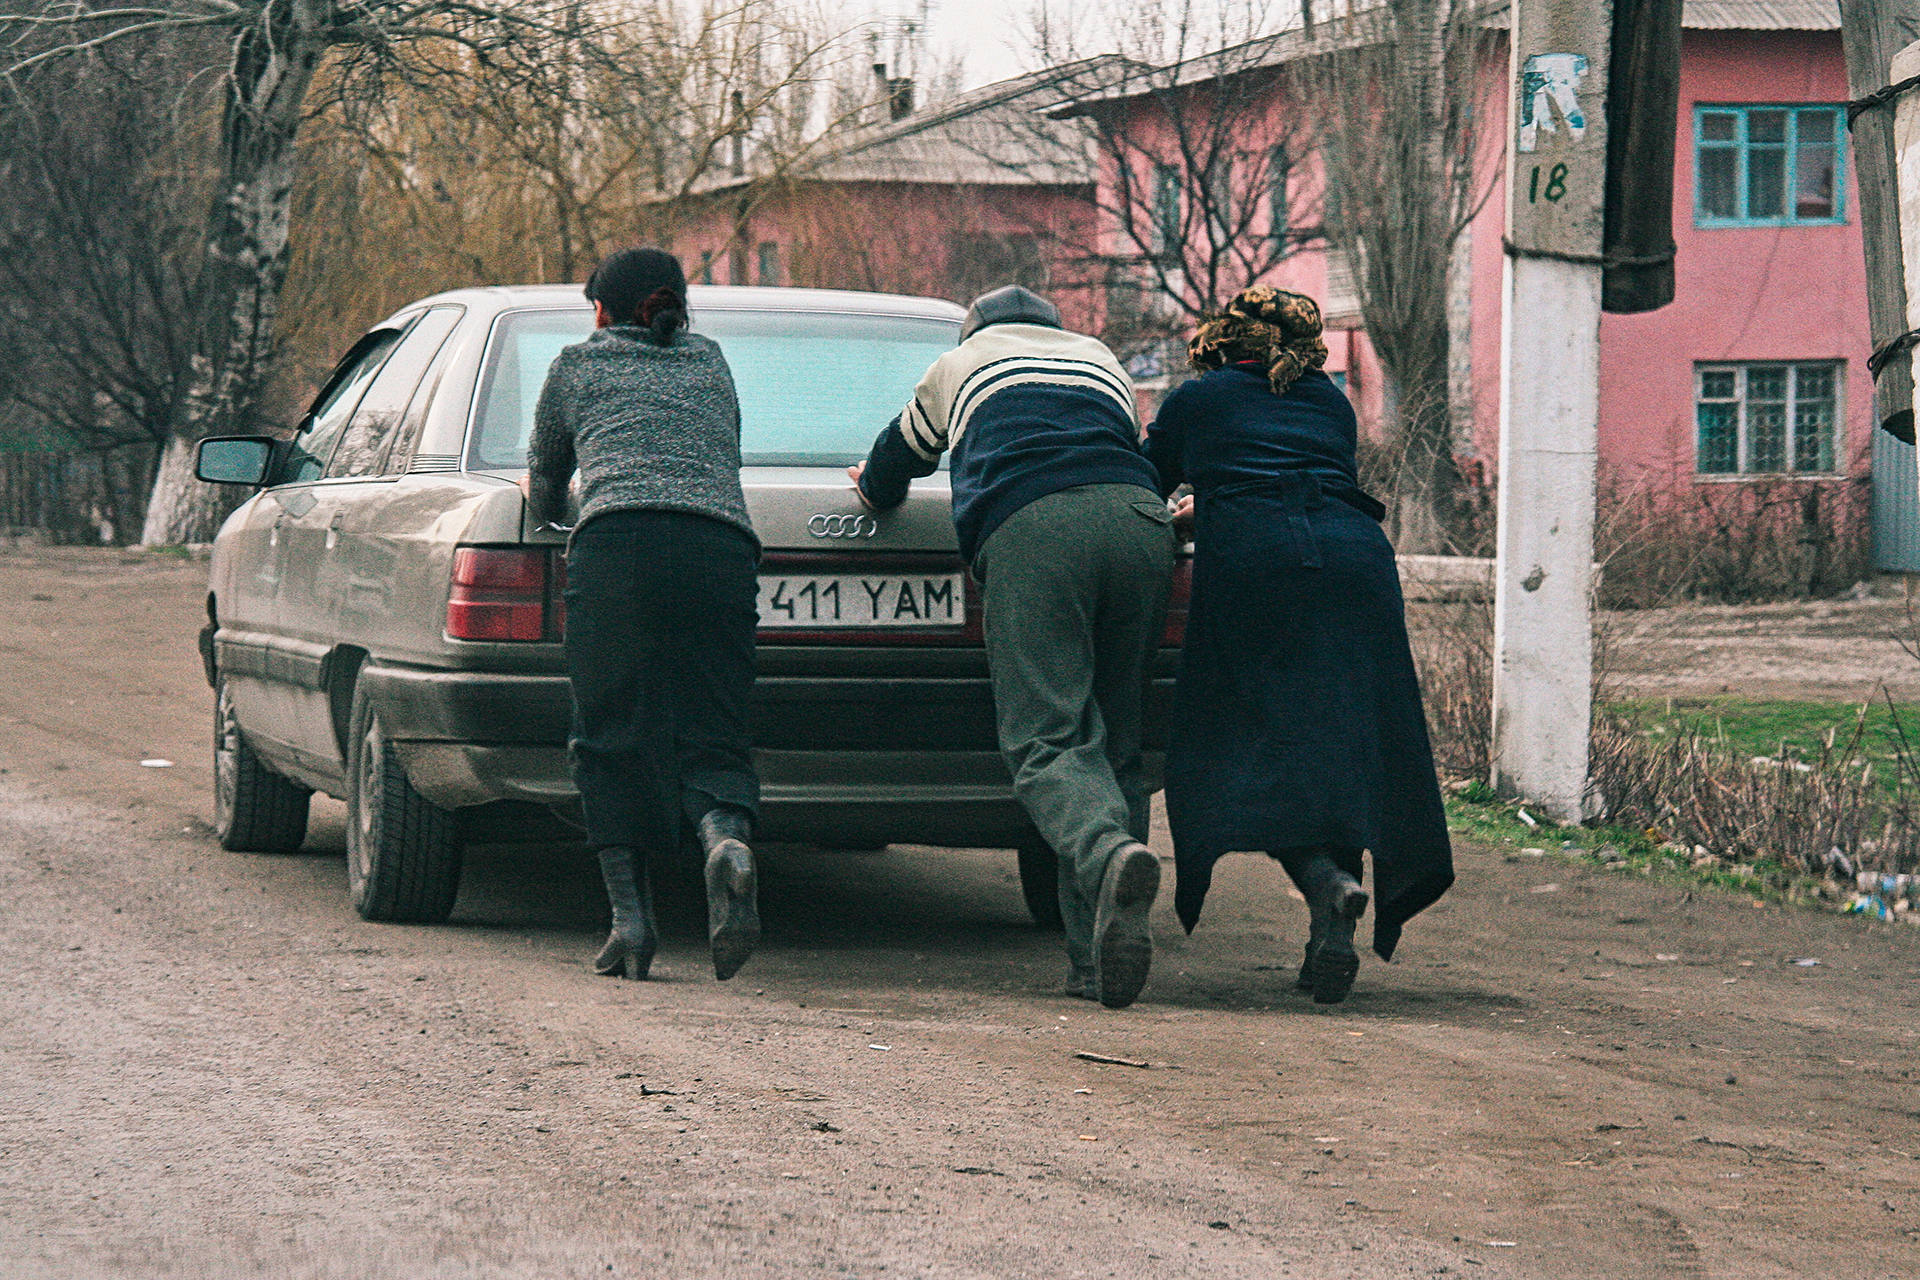 holes, Almaty, bad roads, pushing car, broken car, women, man, problem, genre, Kazakhstan